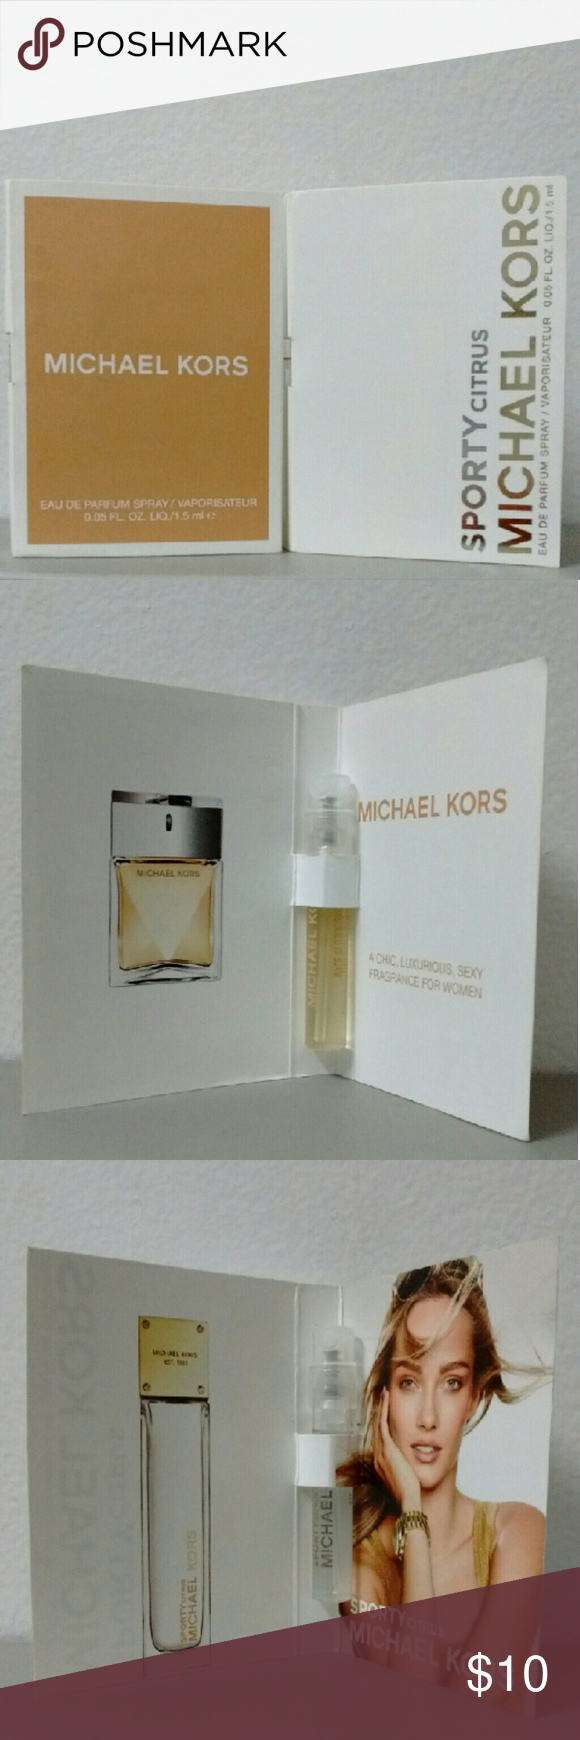 New Michael Kors Perfume Samplers New Michael Kors Sporty Citrus Eau De Parfum 1.5ml/.05oz Eau De Parfum Spray Sample & Michael Kors Michael 1.5ml/.05oz  Eau De Parfum Spray Sample.  Two Totally Different & Amazing Fragrances By MK. Thank You! Michael Kors Makeup